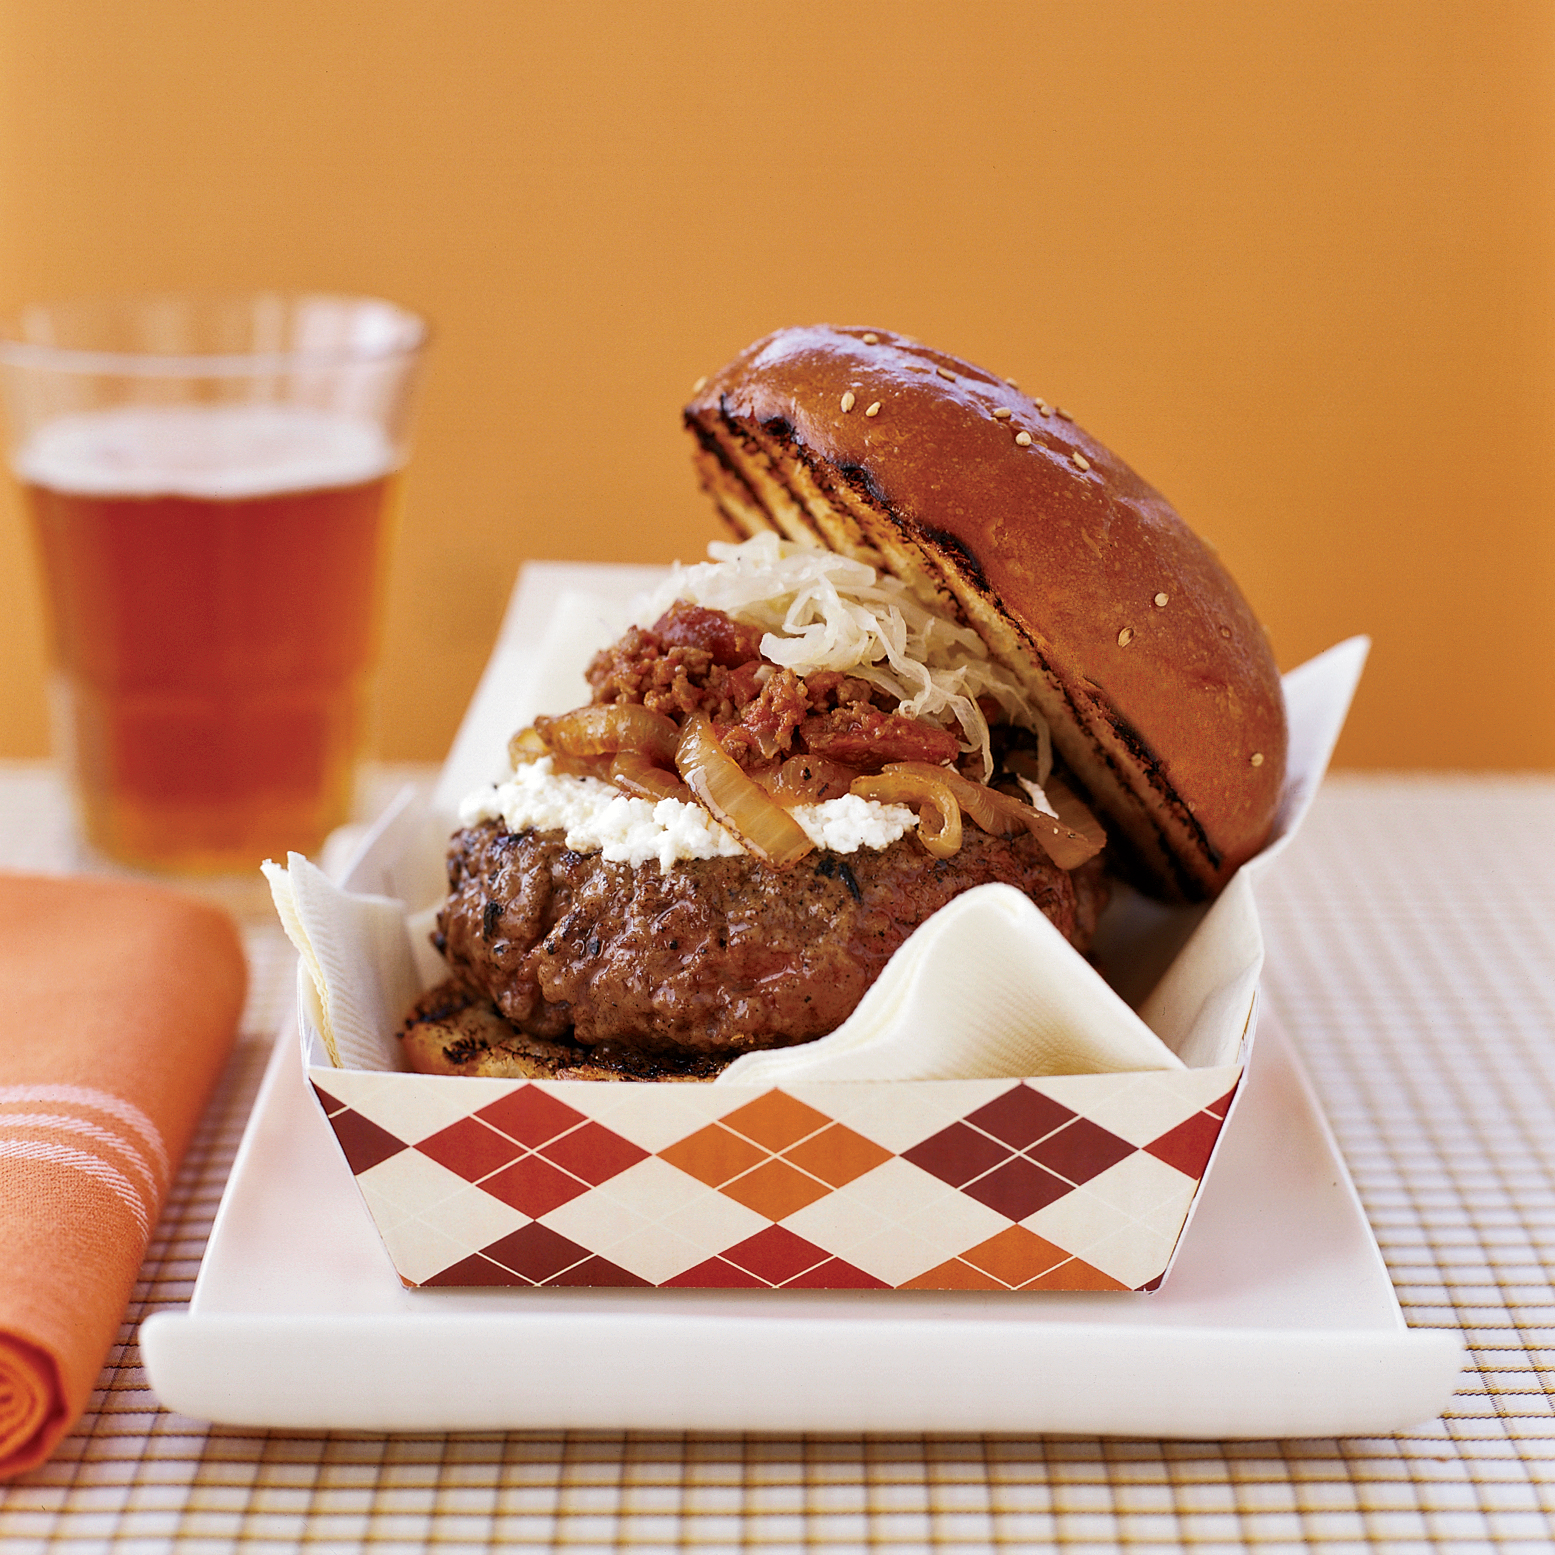 10 Great Burgers